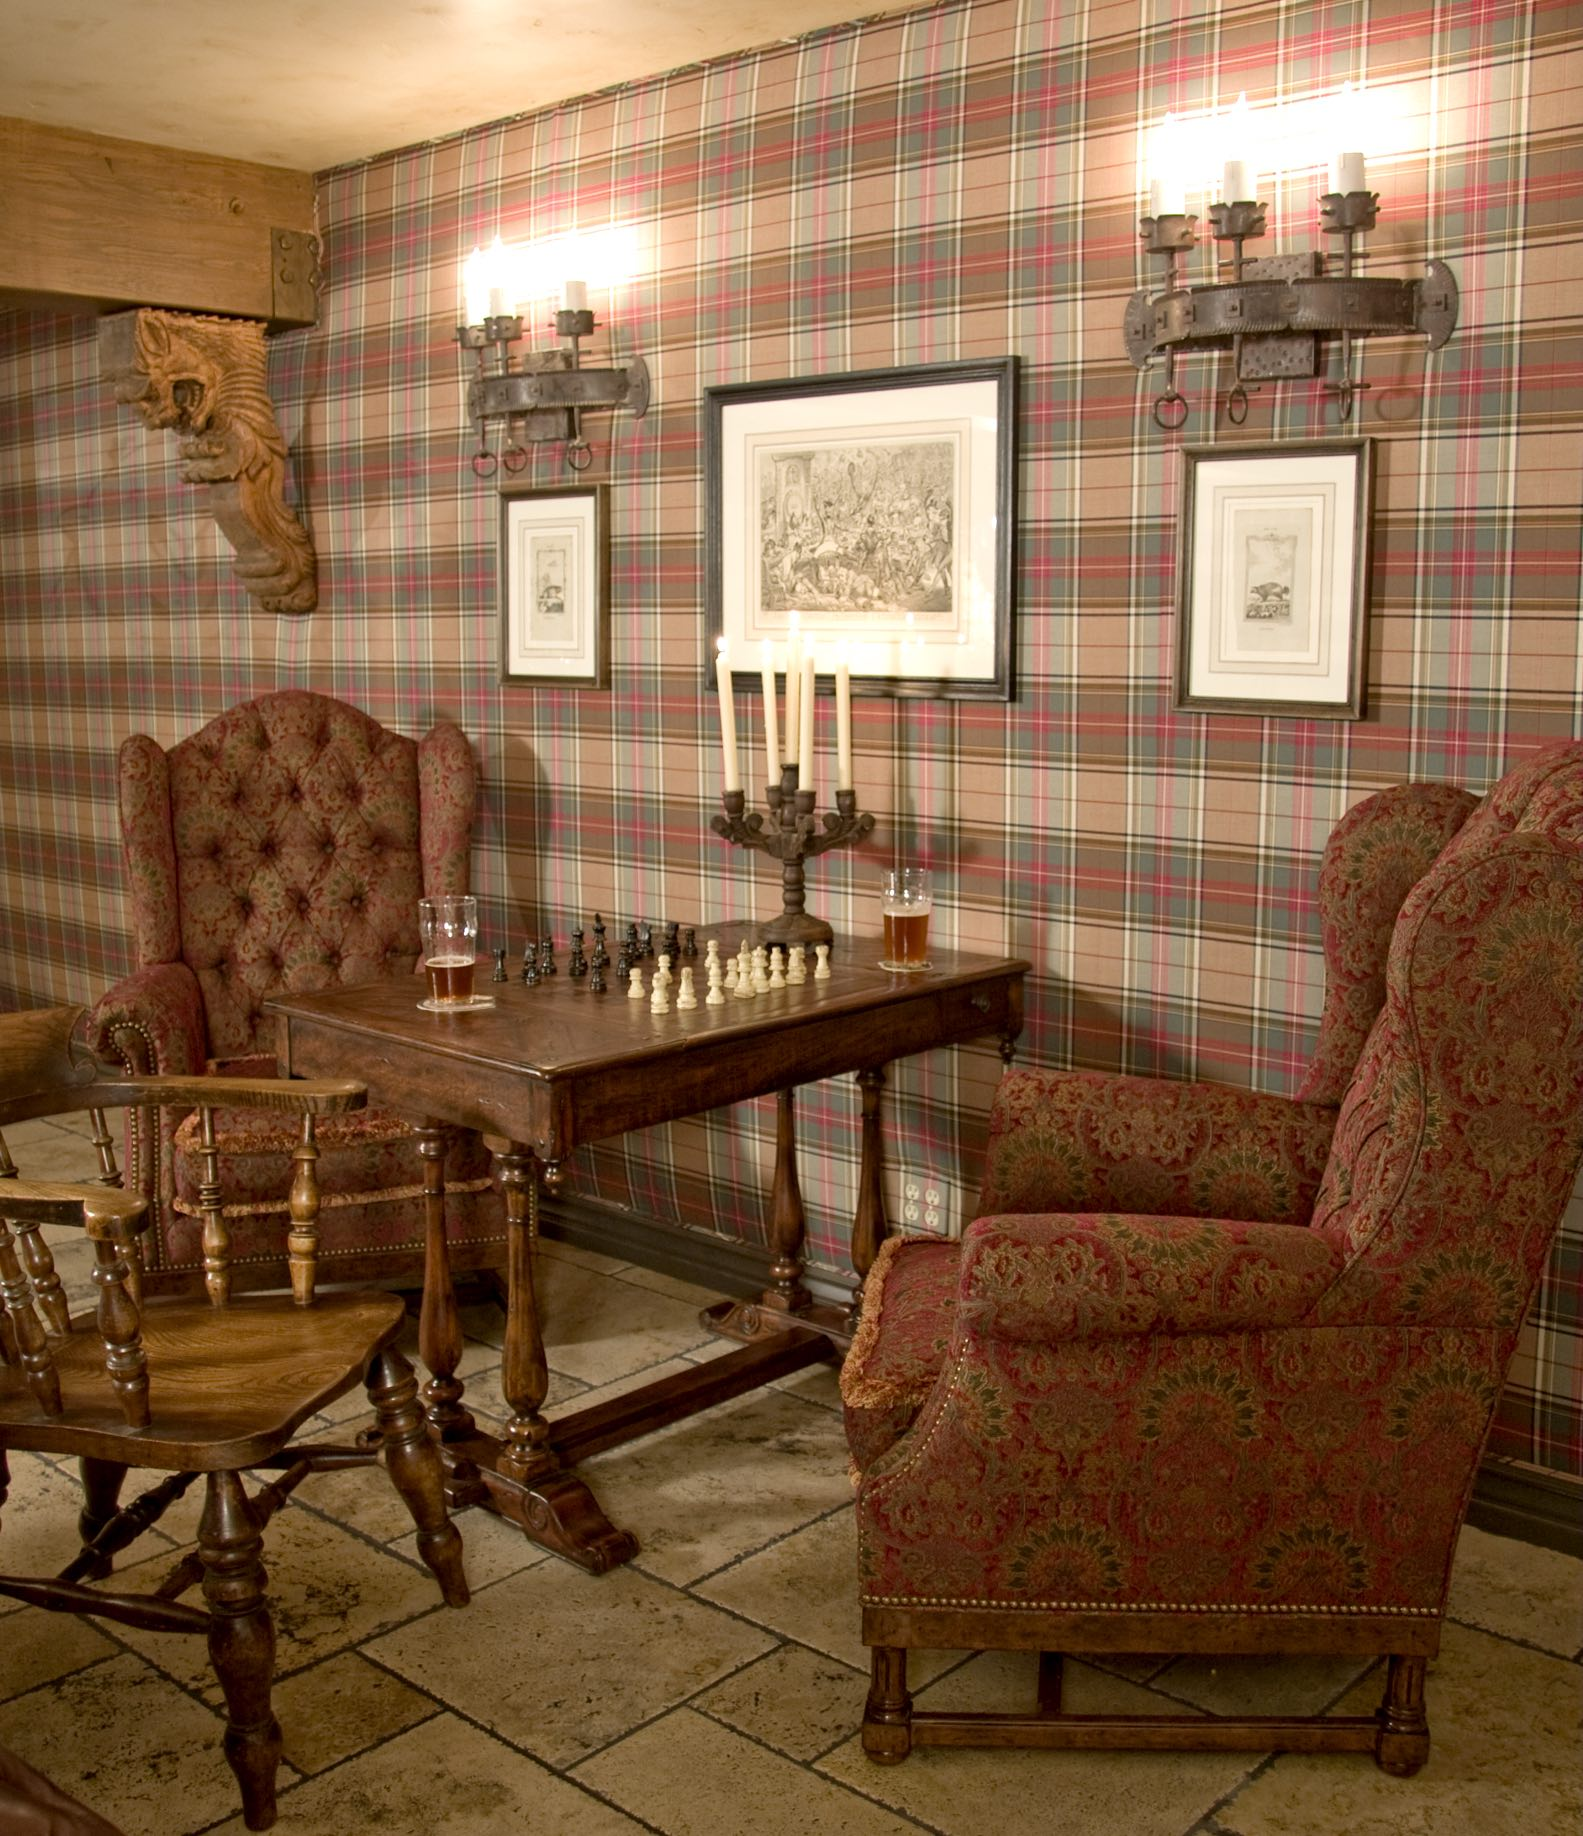 man-cave-chesstable-plaid-wallpaper-Chelsea copy.jpg